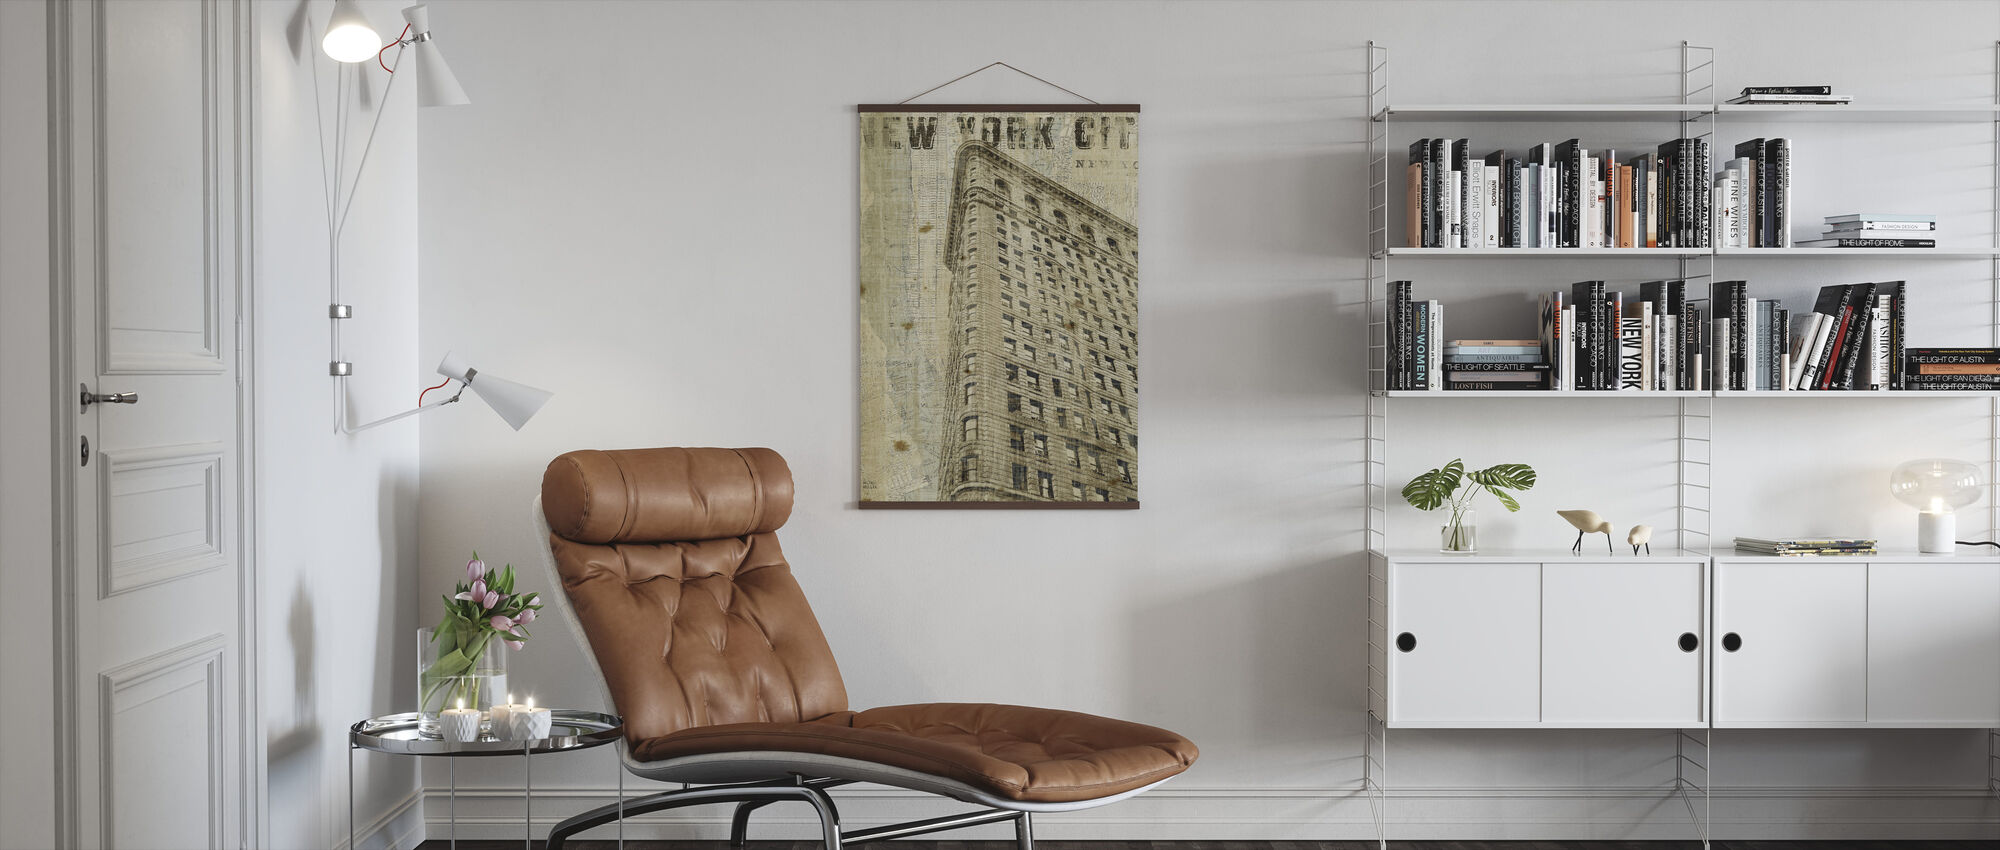 Vintage New York Flat Iron - Poster - Living Room